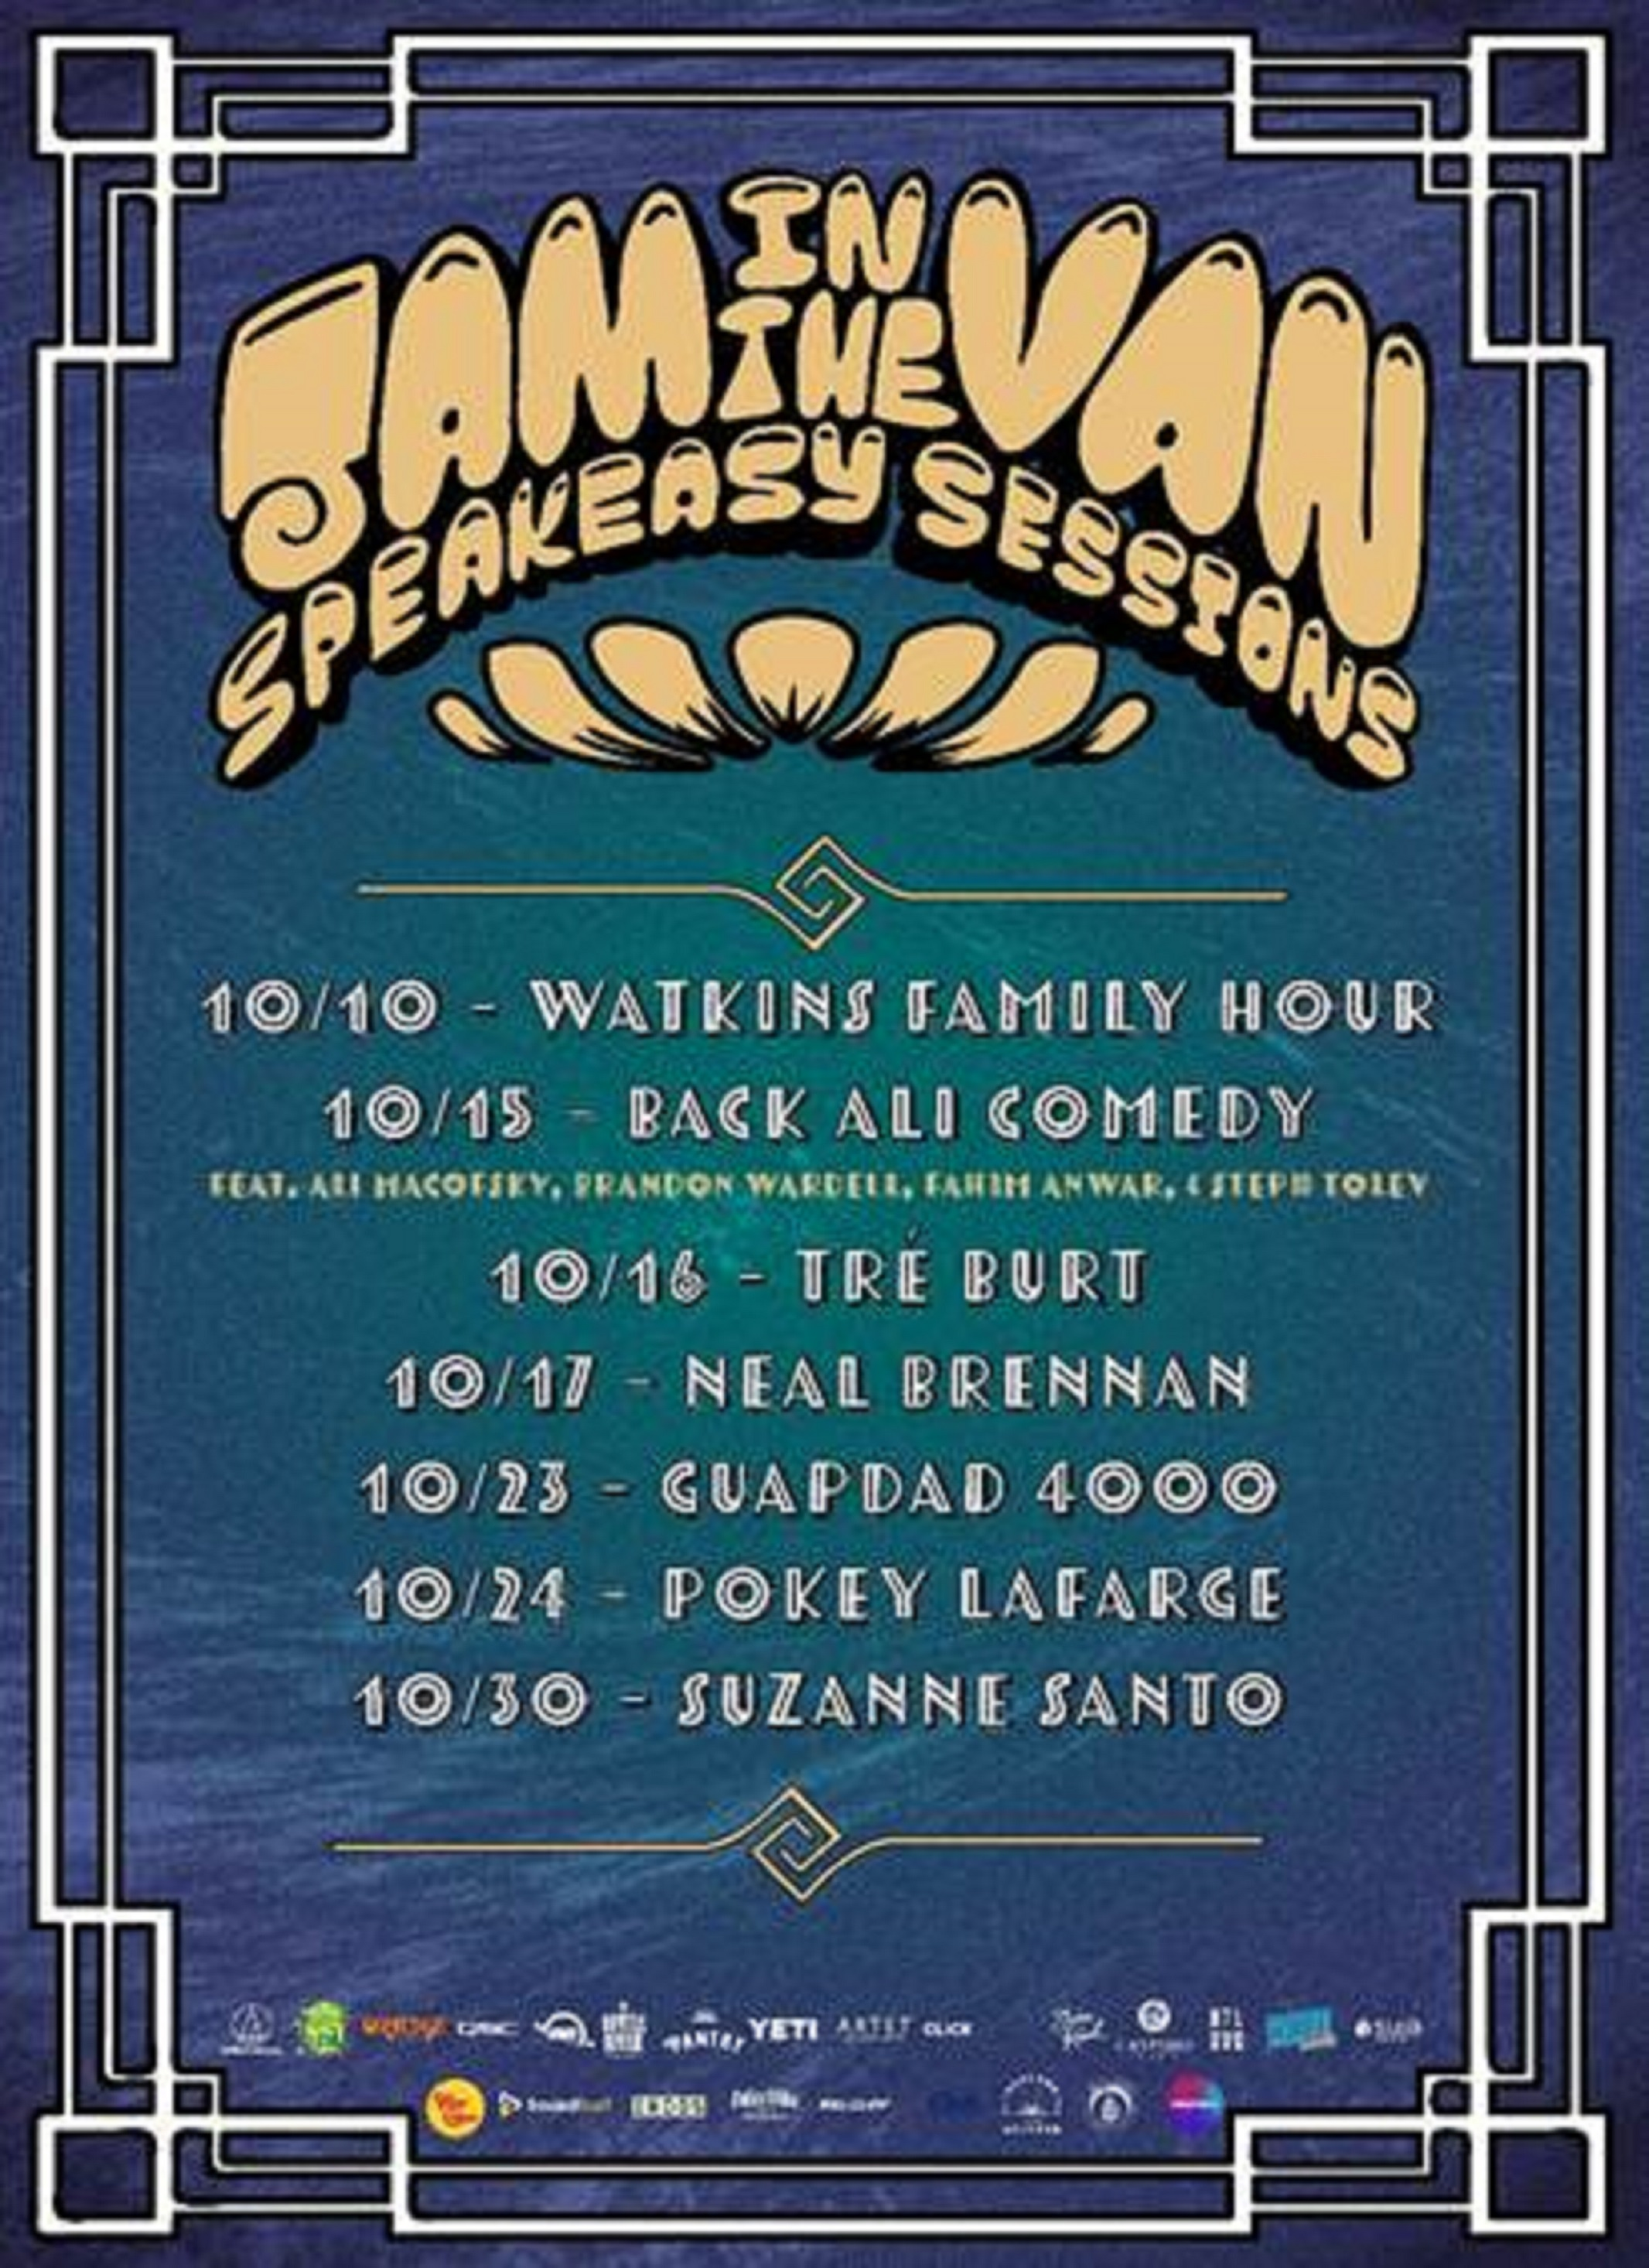 Jam In The Van Announces Speakeasy Sessions